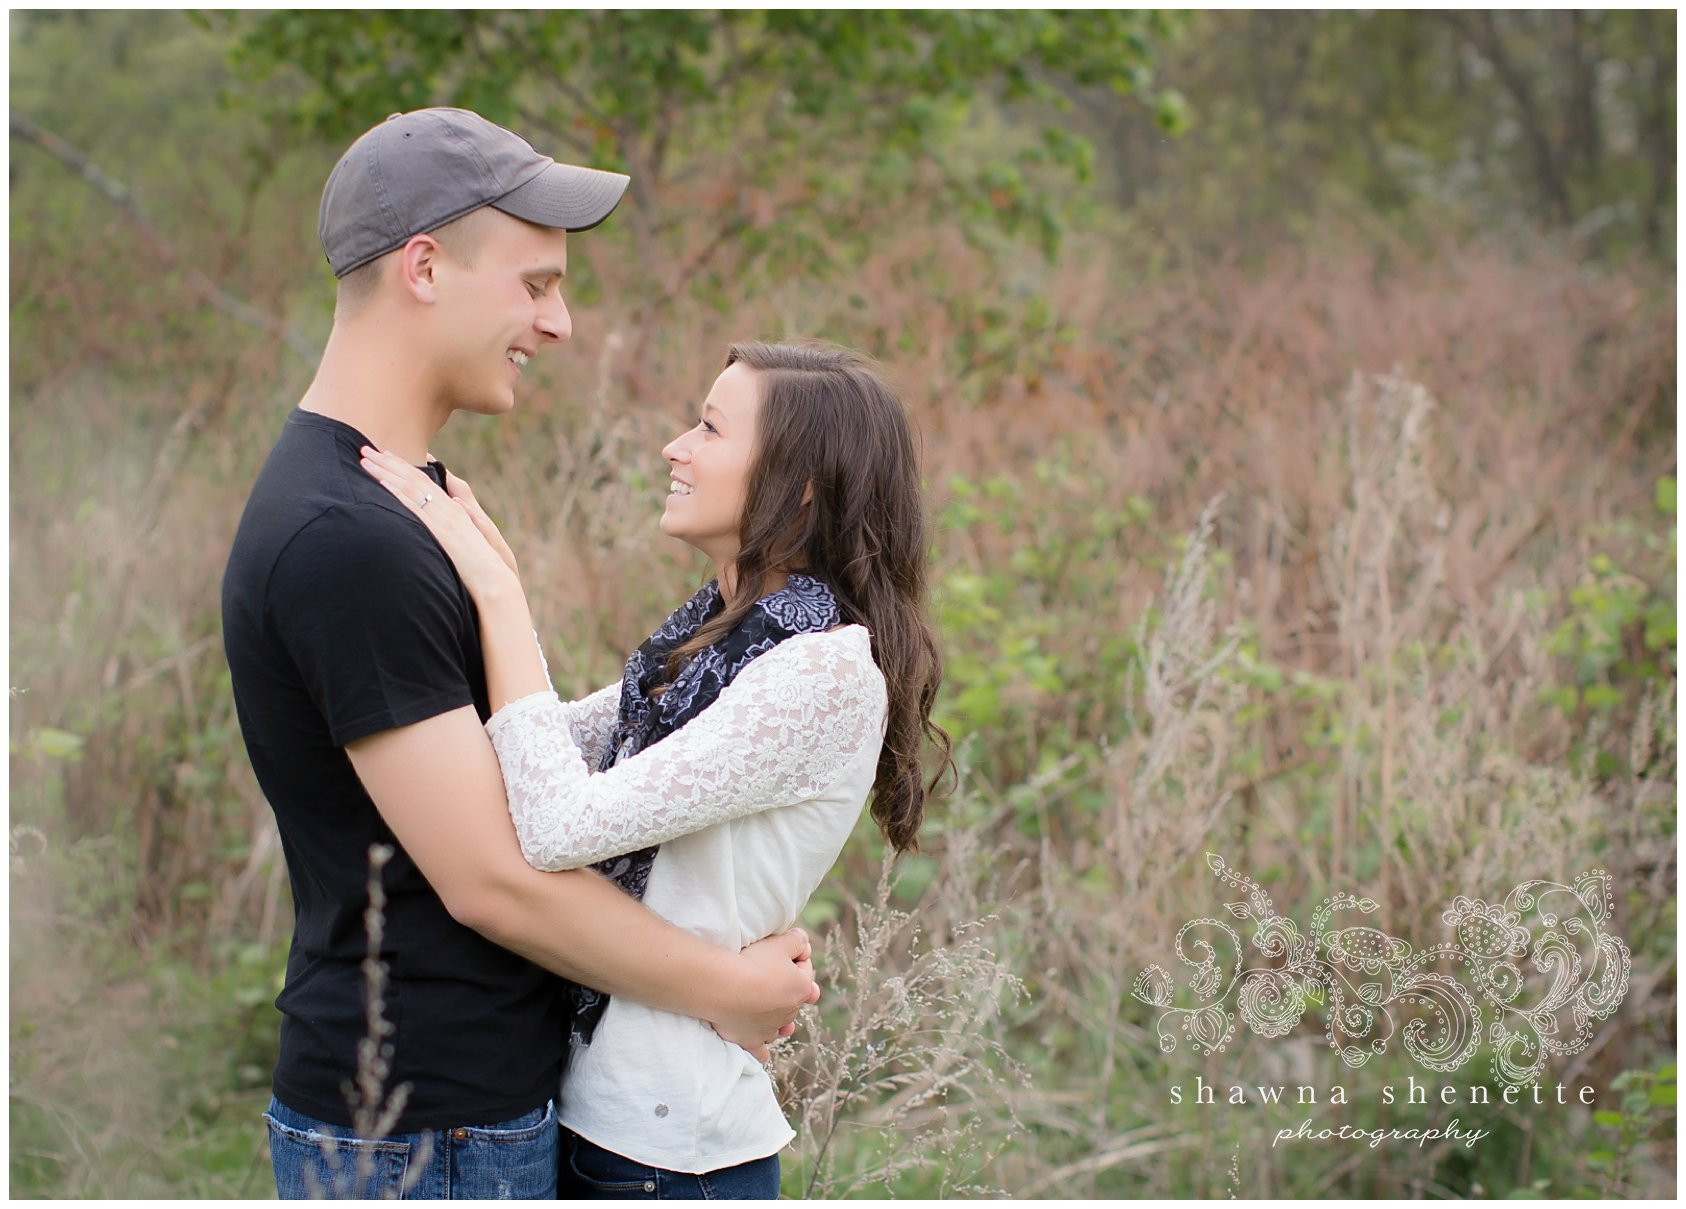 Massachusetts Engagement Photos Millbury Photographer Worcester Wedding Photos Couples Engaged Grafton Wachusett Wedding